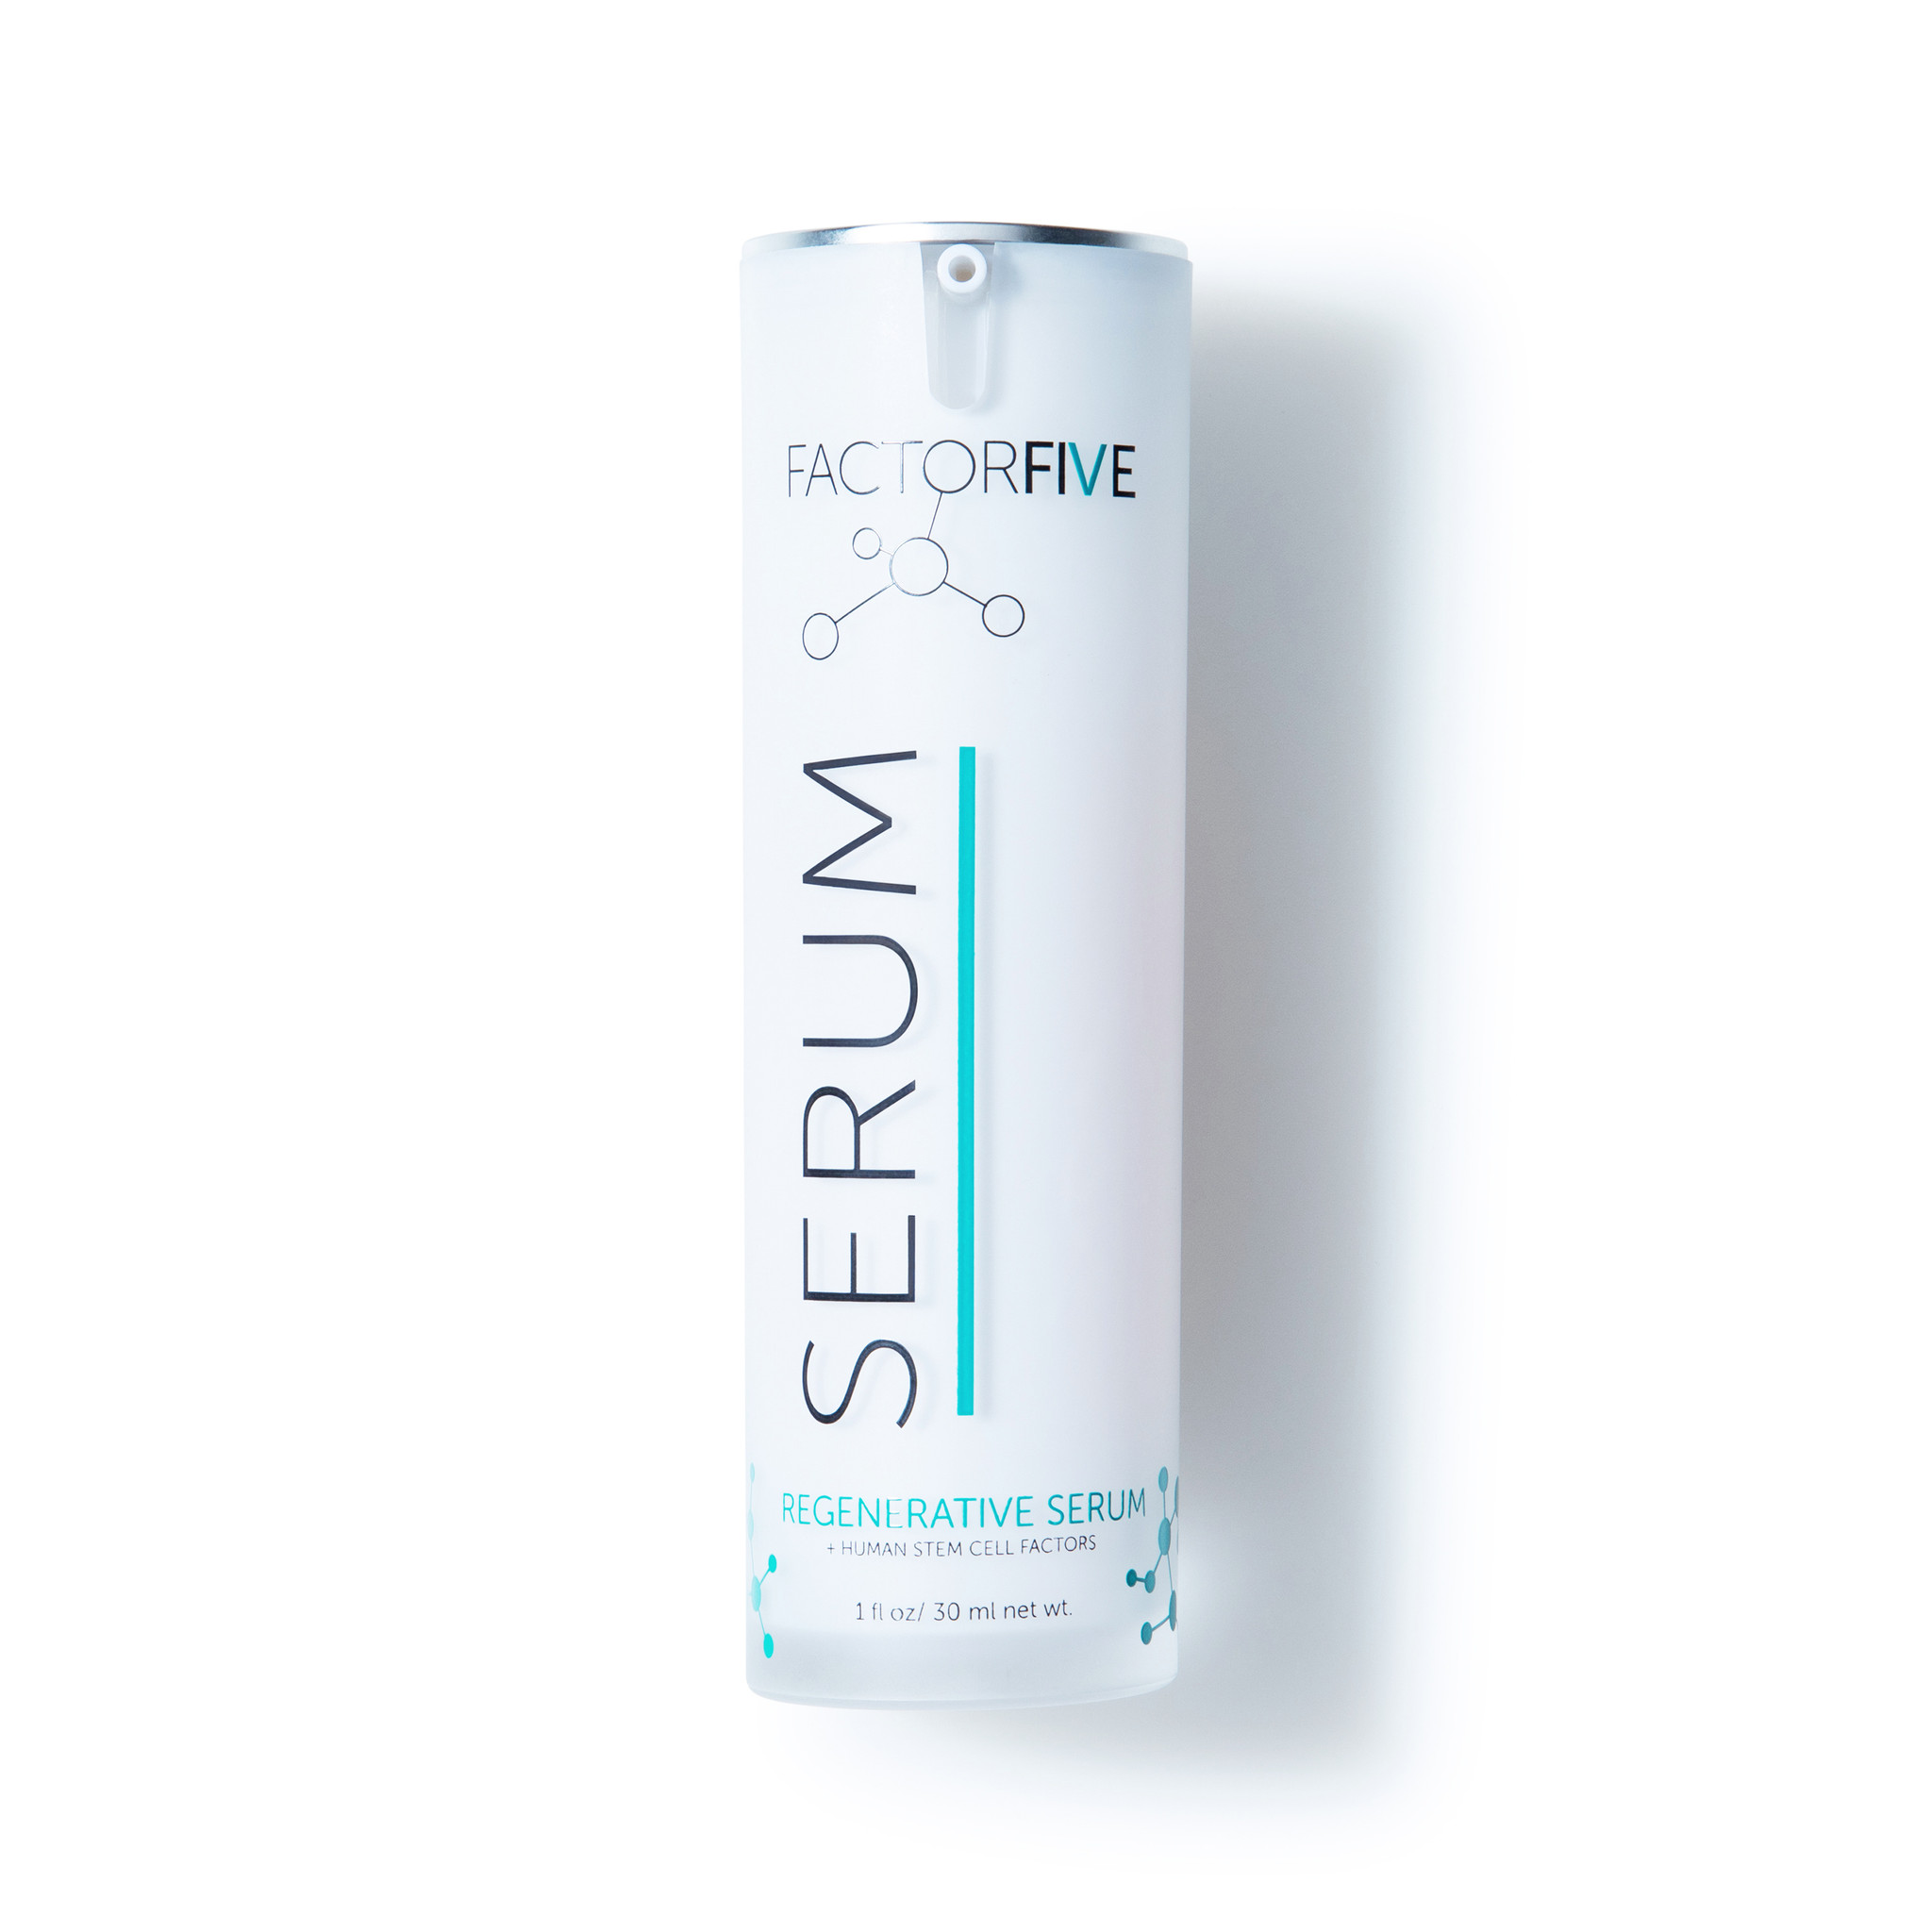 FACTORFIVE Skincare Regenerative Serum